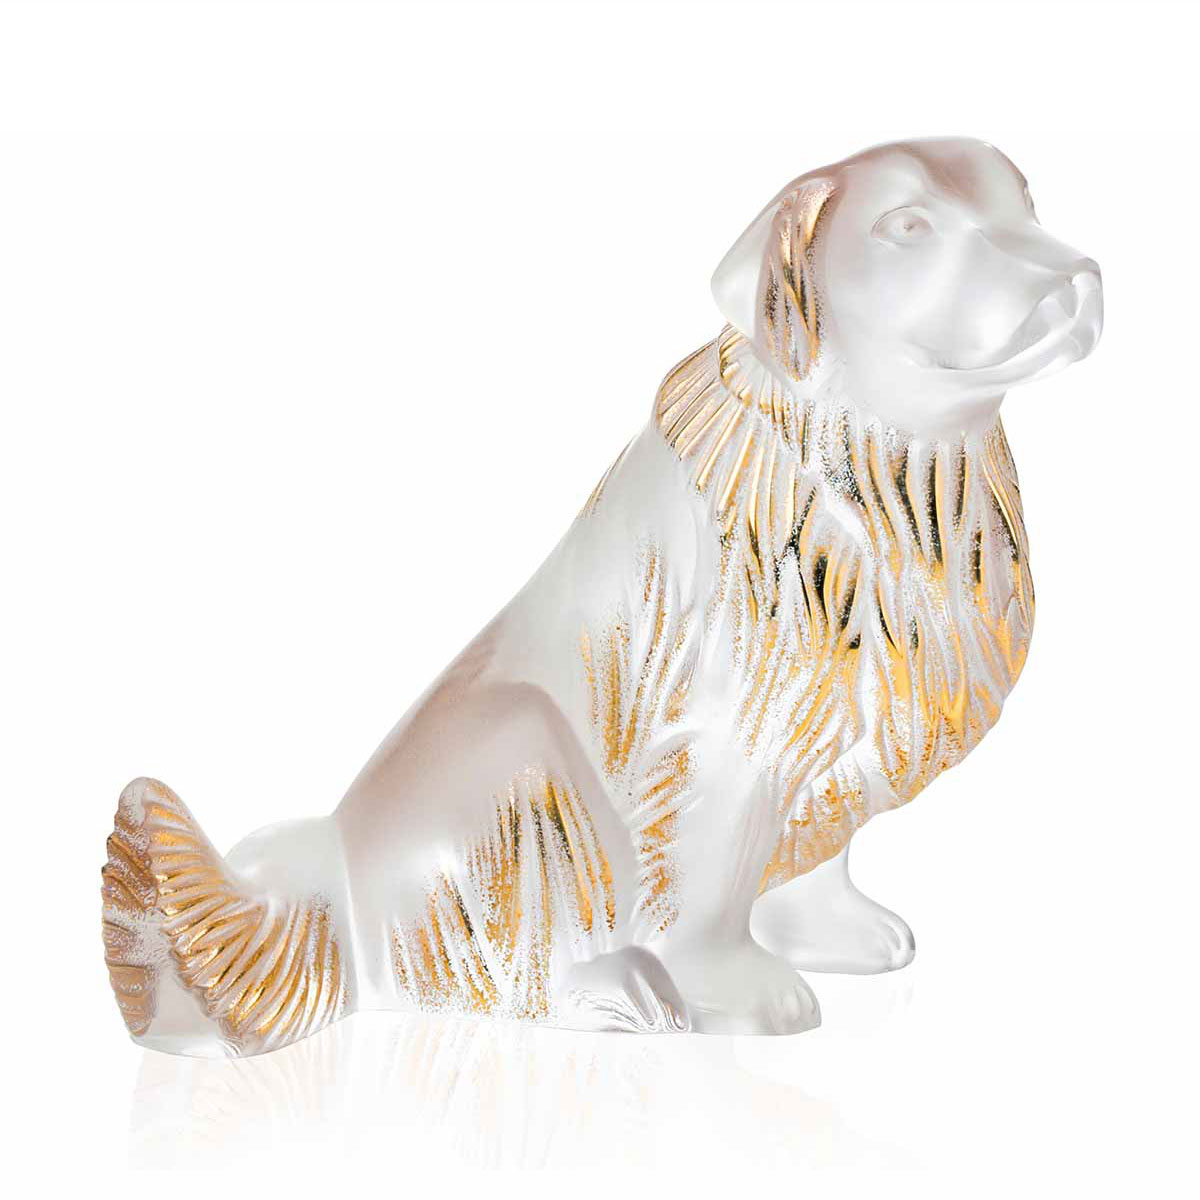 Lalique Golden Retriever Sculpture, Clear and Gold Luster